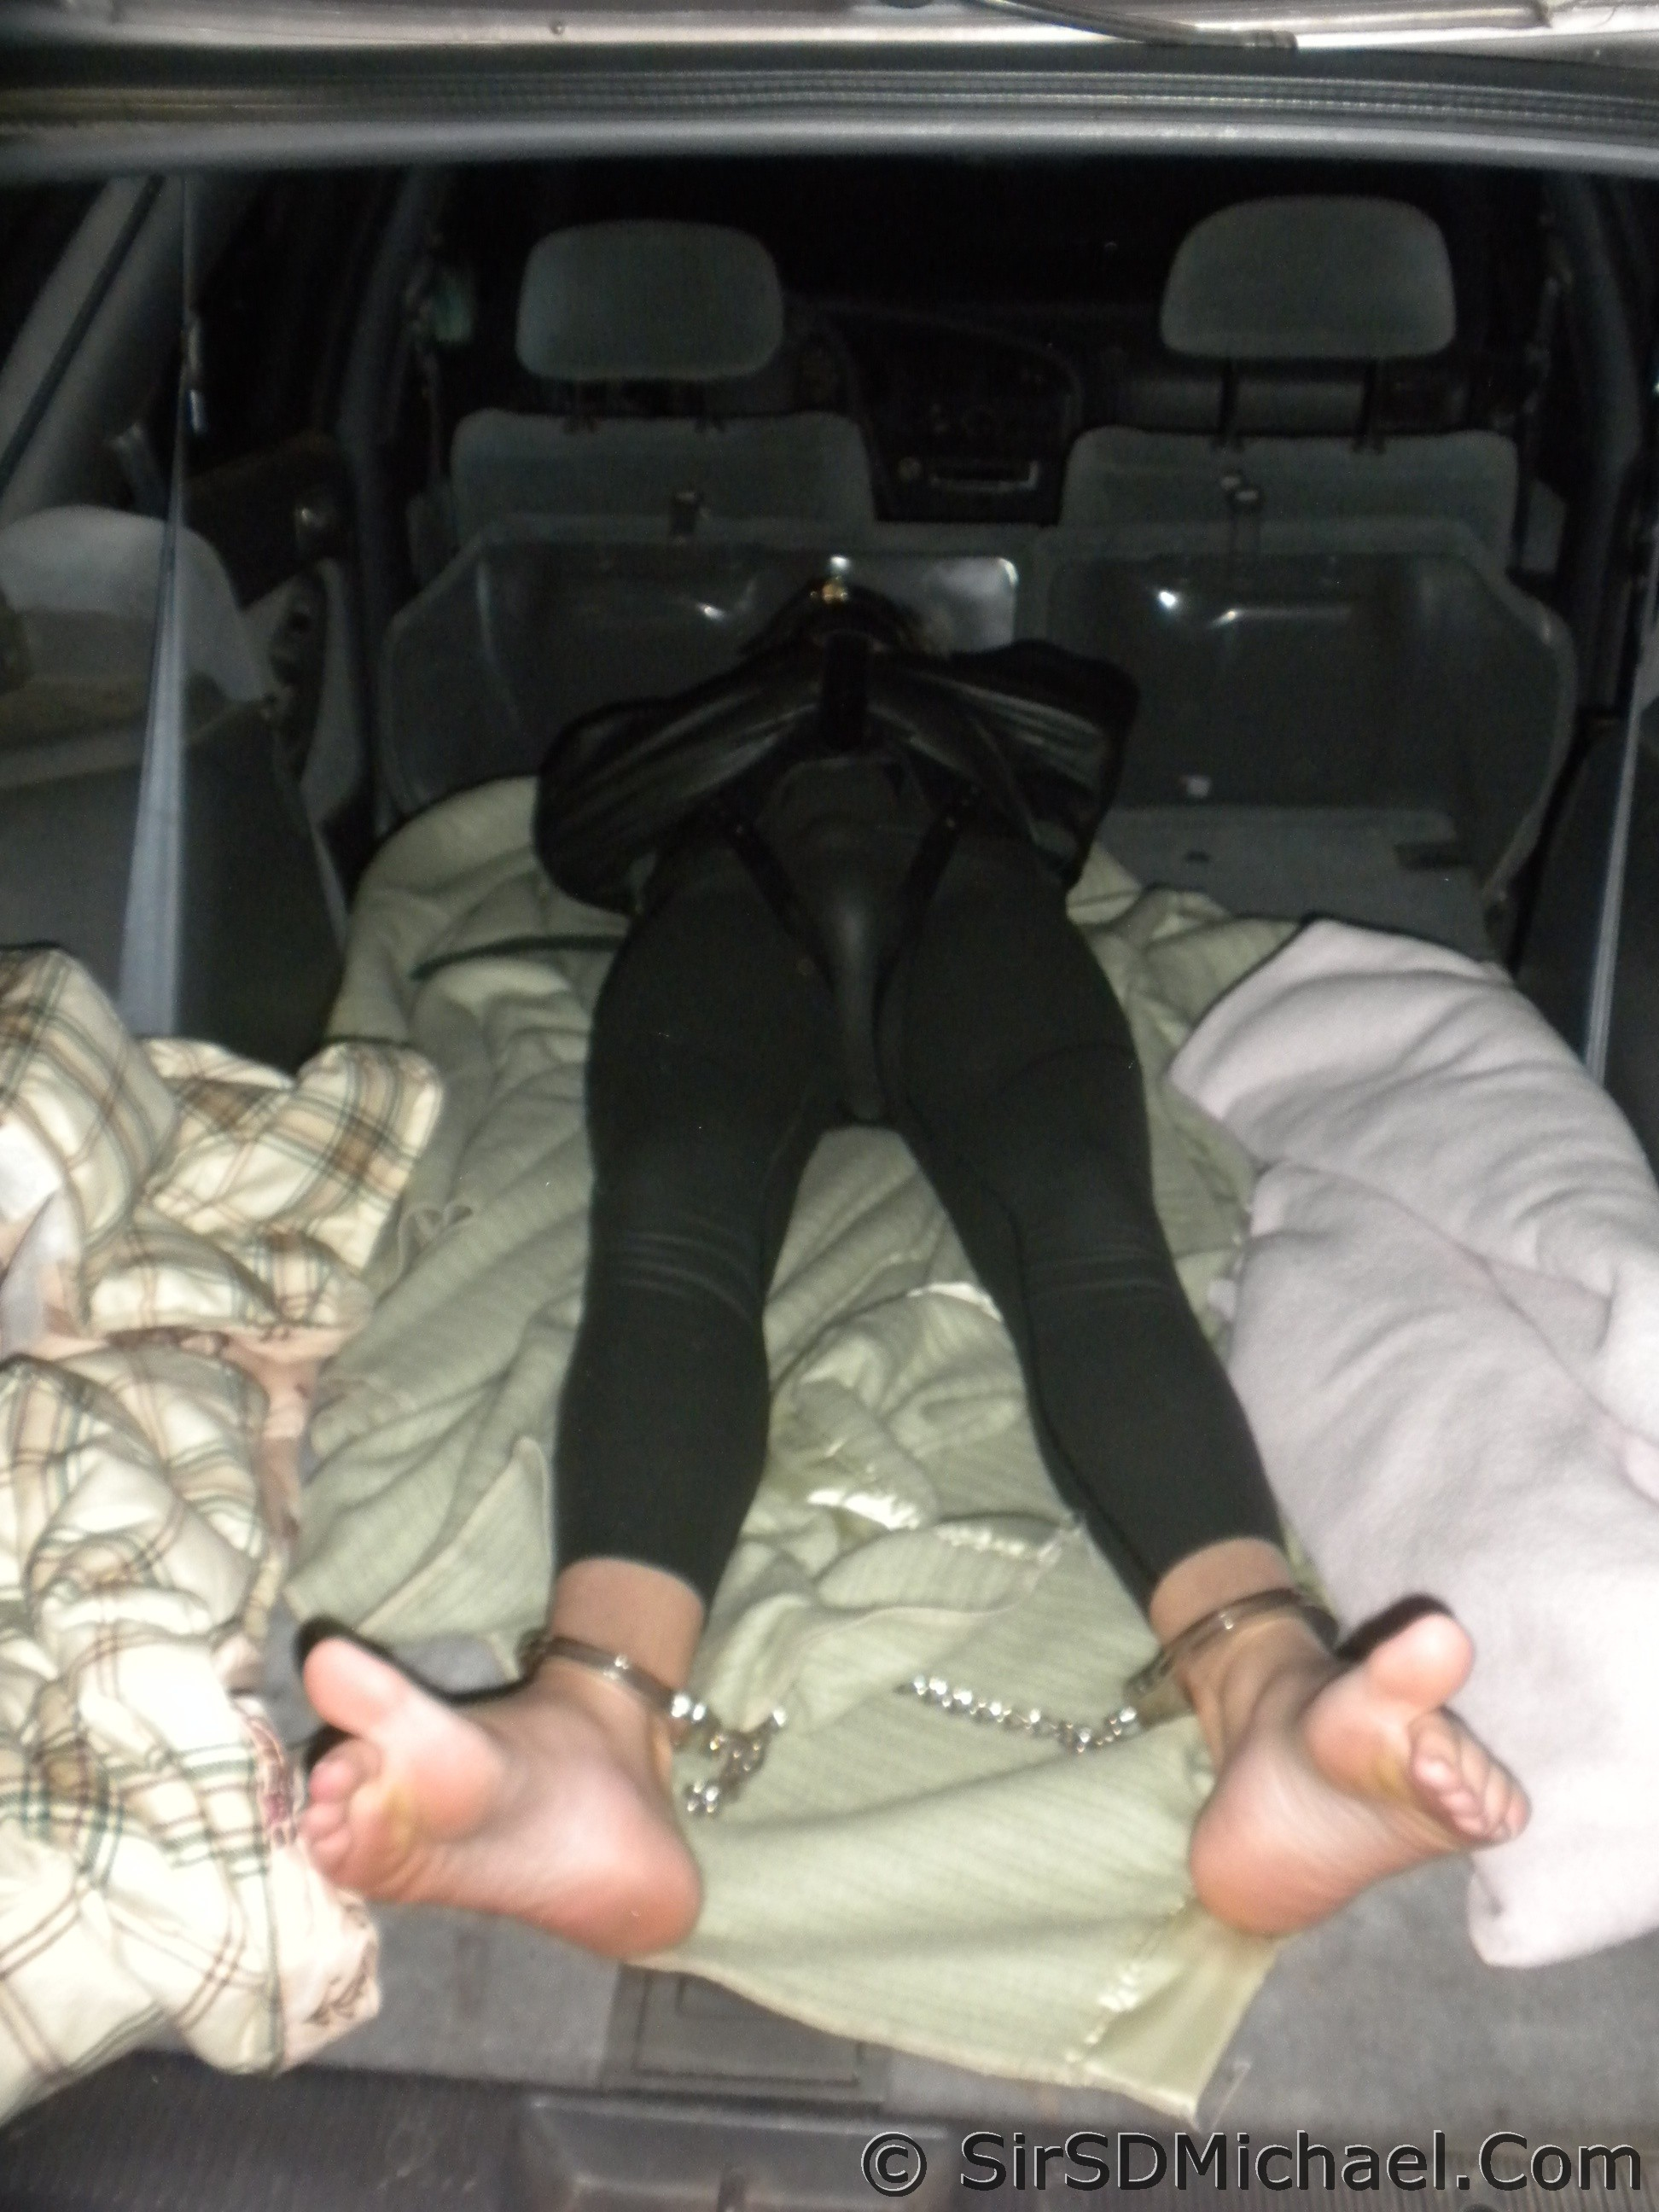 Bondage transport. Boy in a straitjacket, gagged, and in leg irons, being transported in my old station wagon.